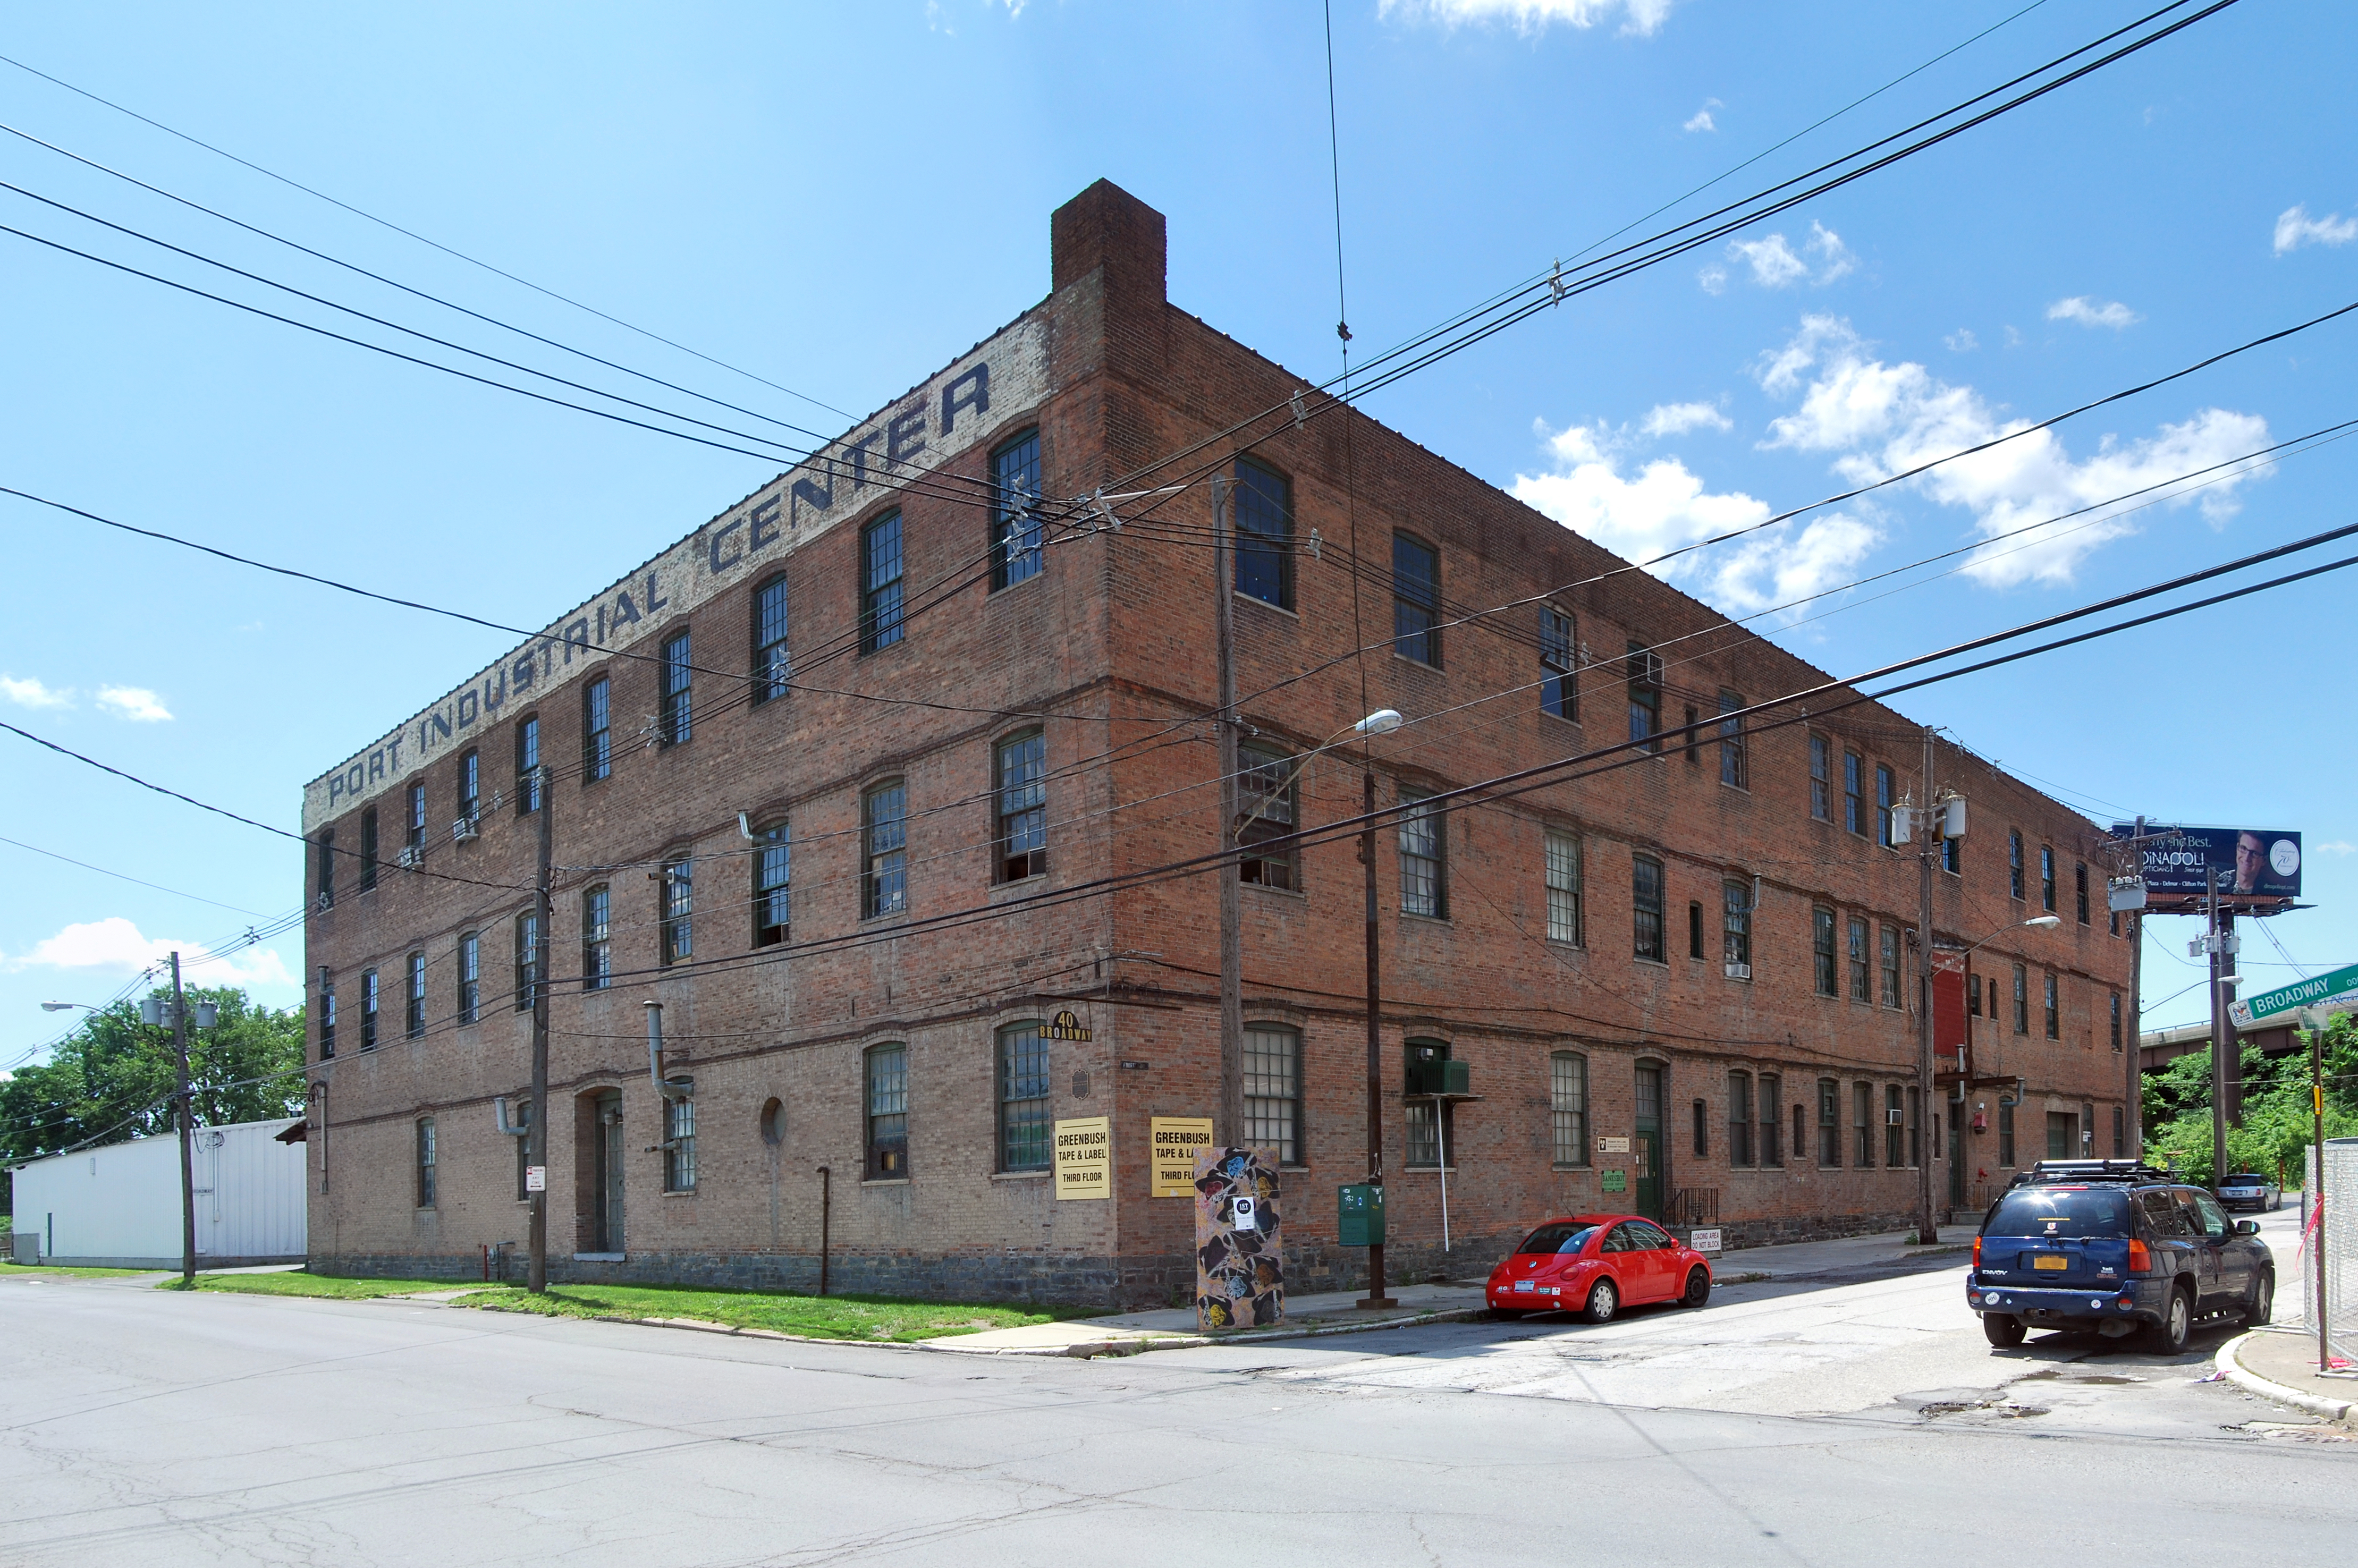 A Three Story Brick Building Seen From Its Right So That Two Sides Are